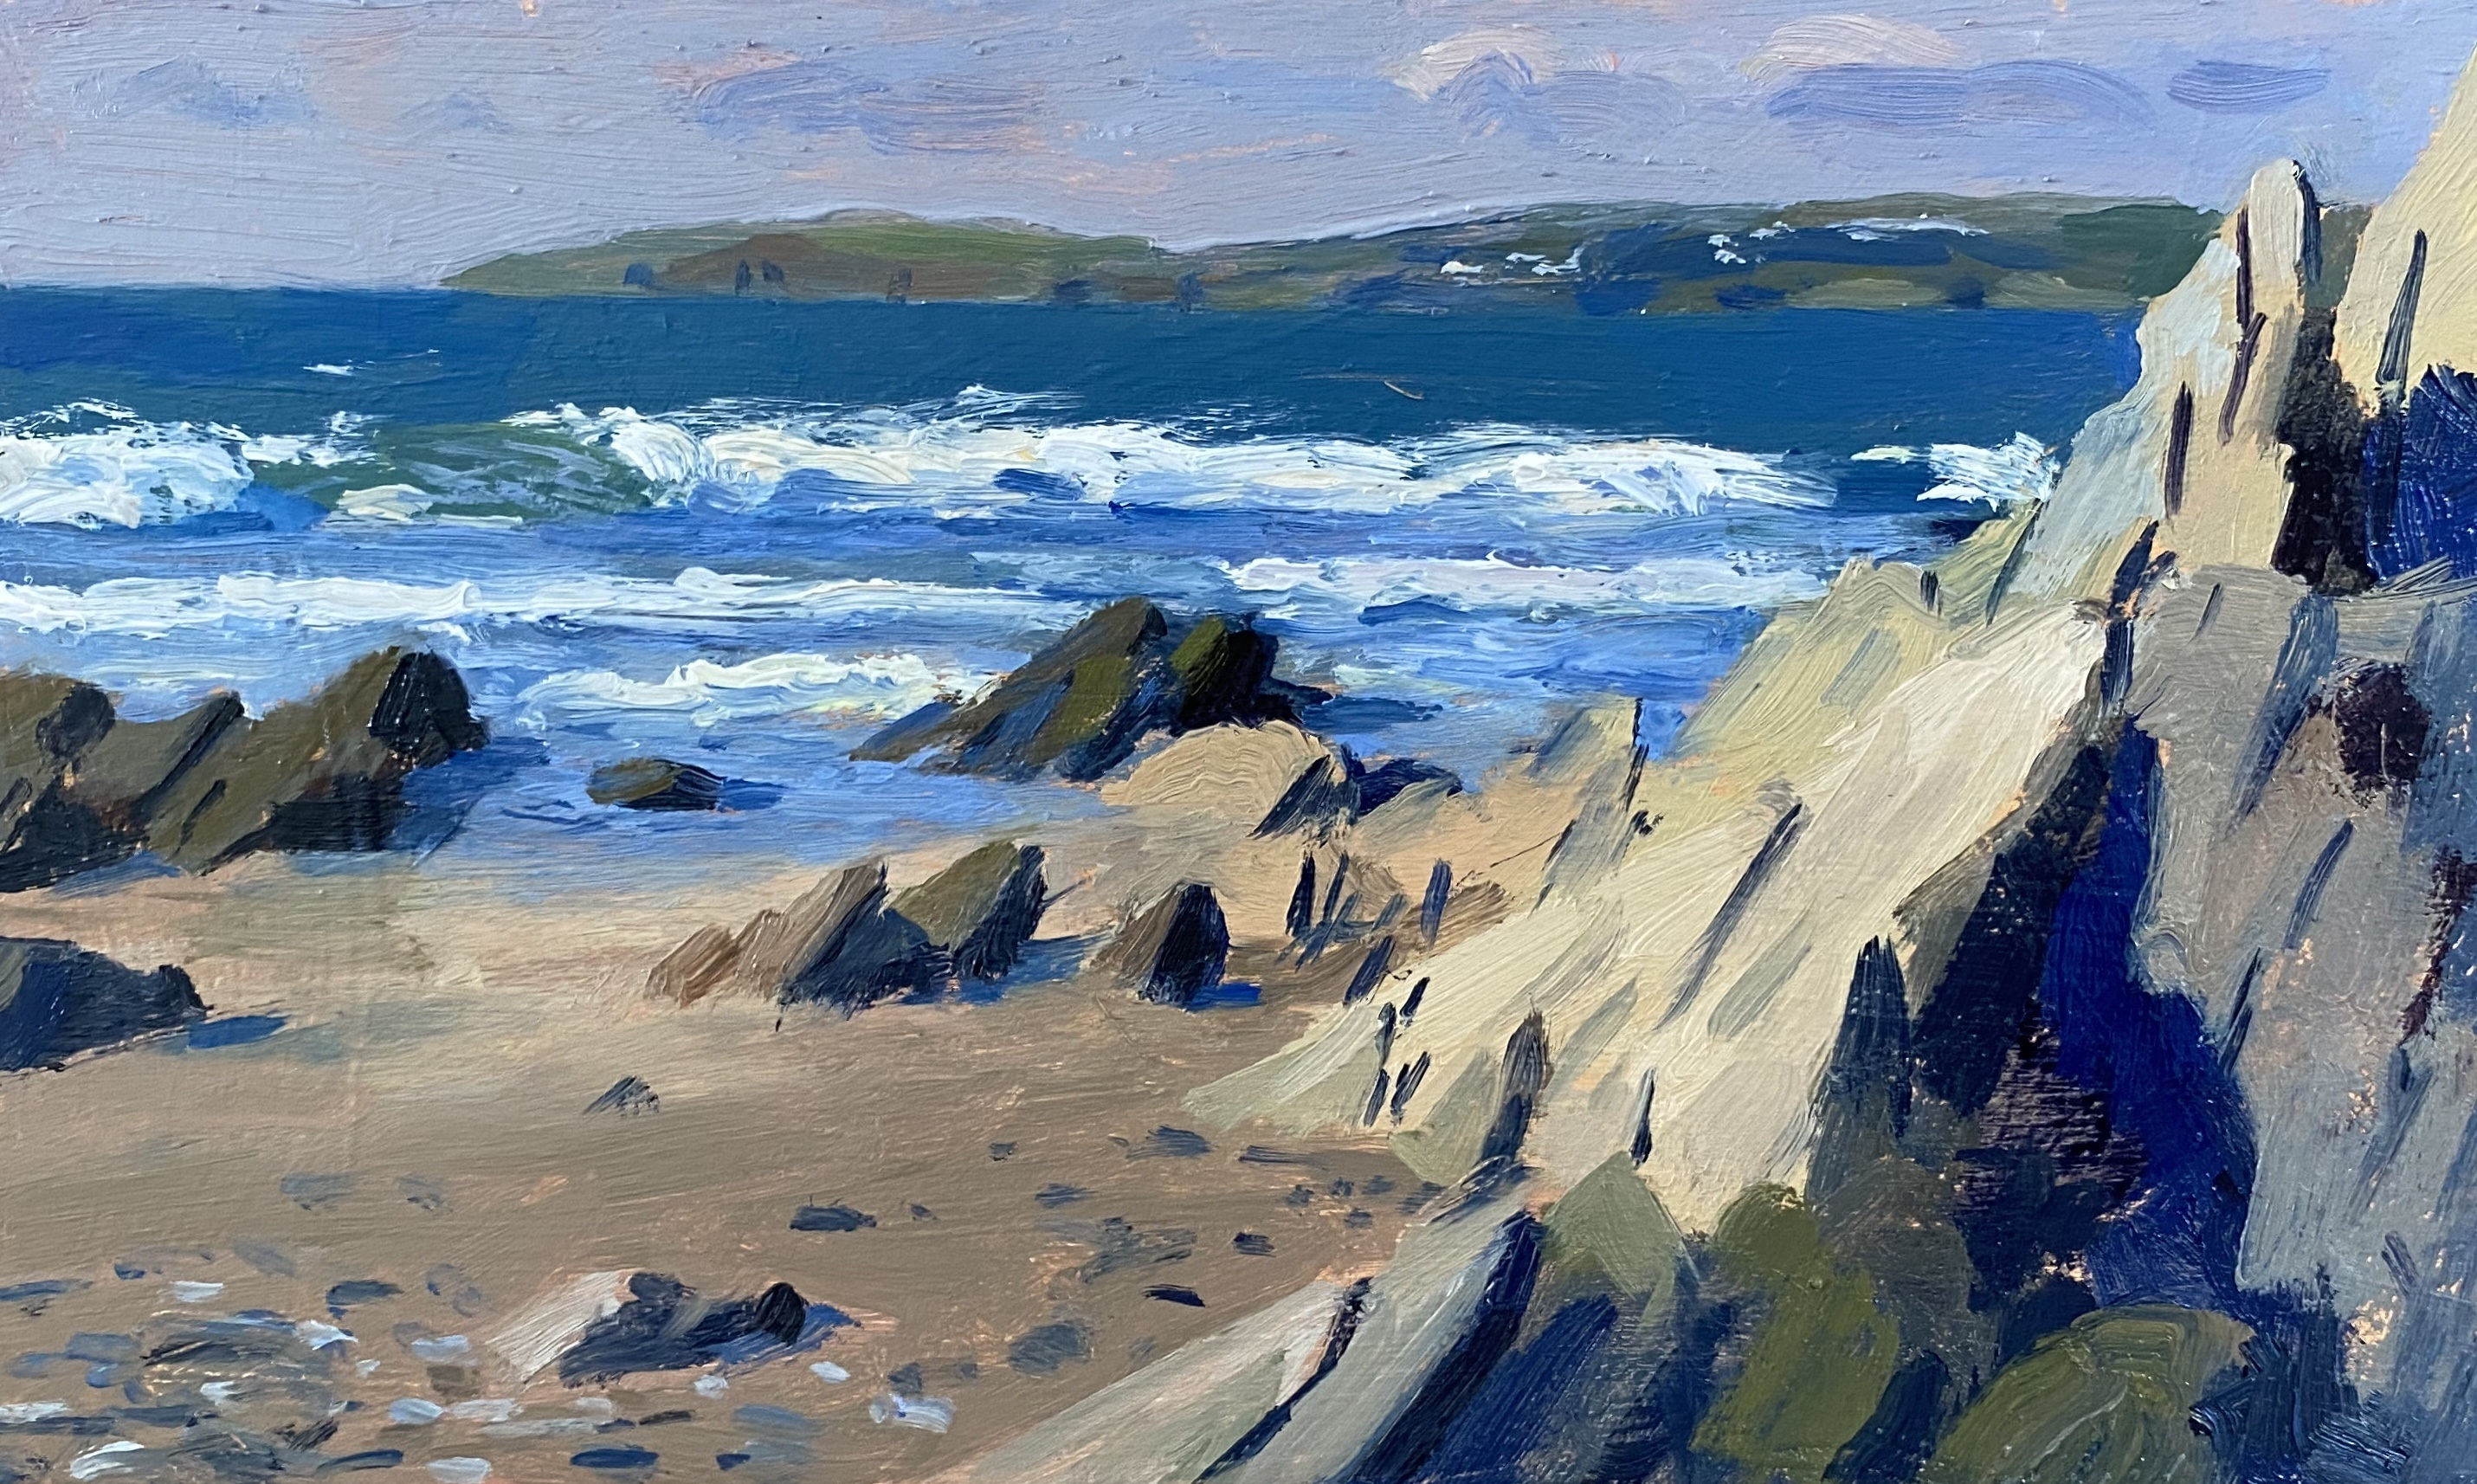 Daisy's painting 'Crashing Waves, Pendower Beach' was exhibited with The Royal Society of Marine Artists